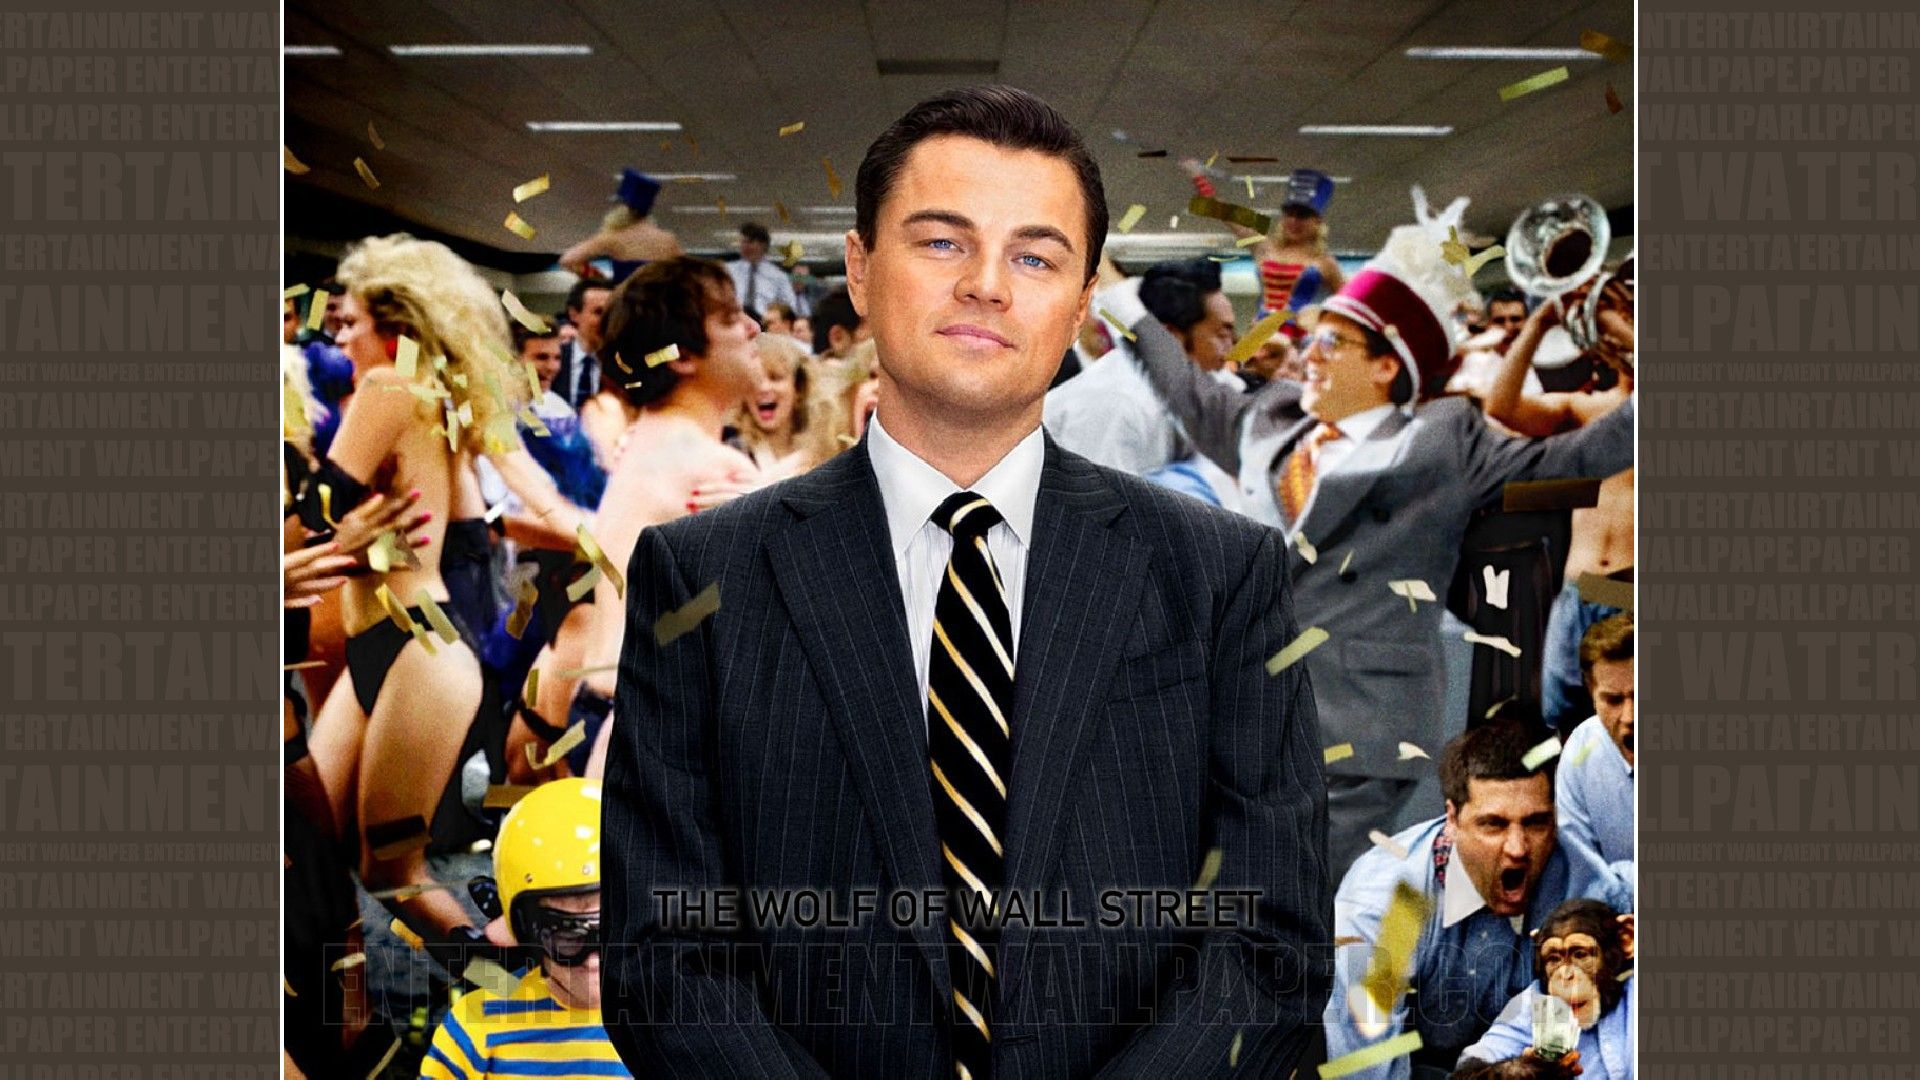 the wolf of wall street wallpaper - original size, download now